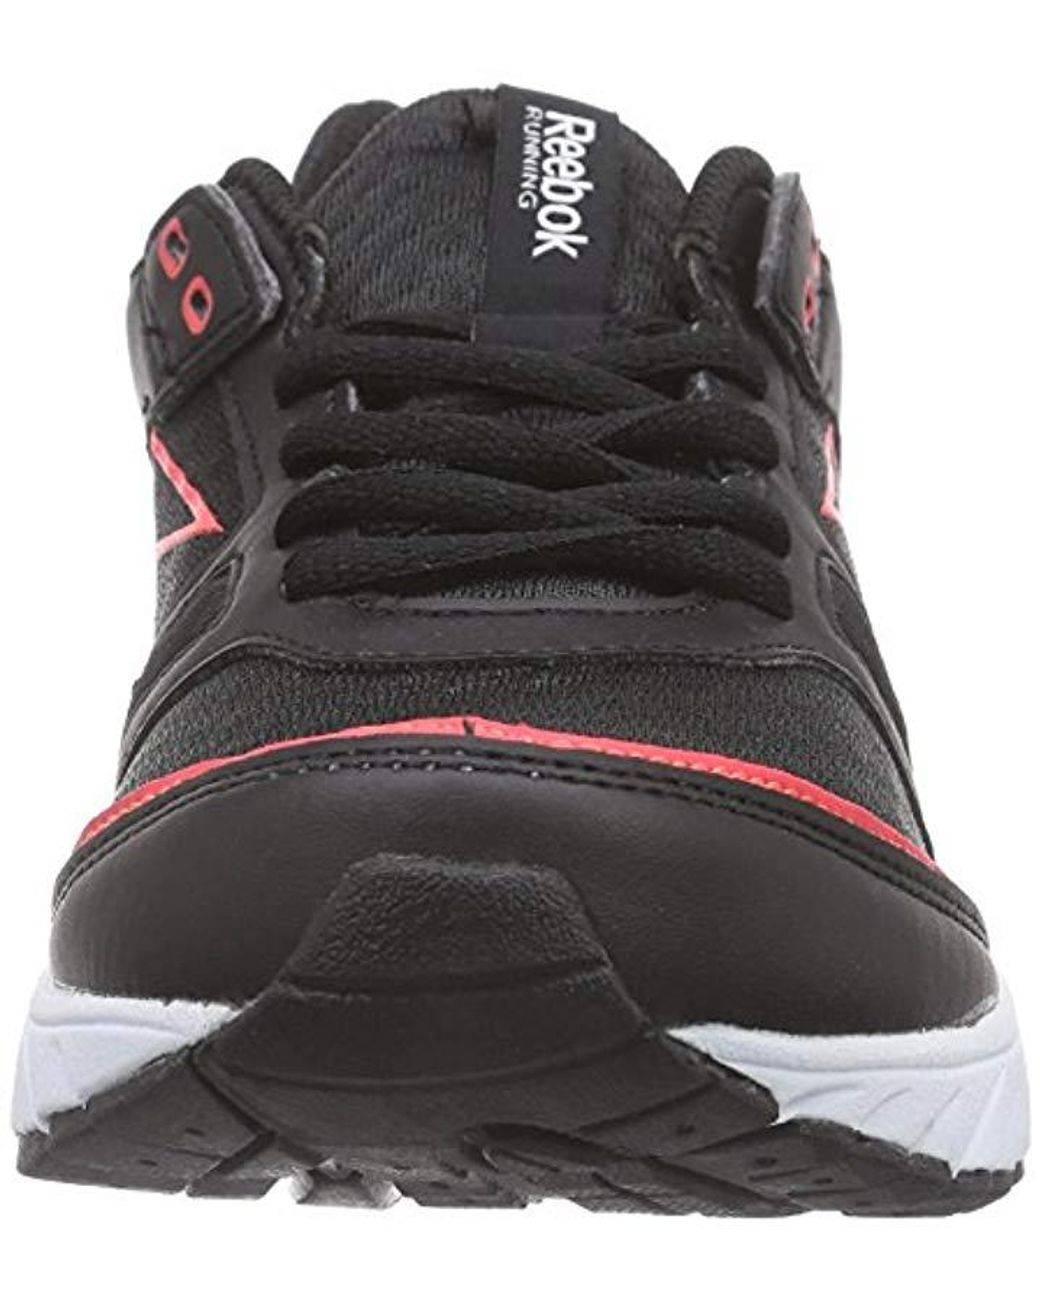 Reebok Synthetic Triplehall 4.0 Running Shoes in Black